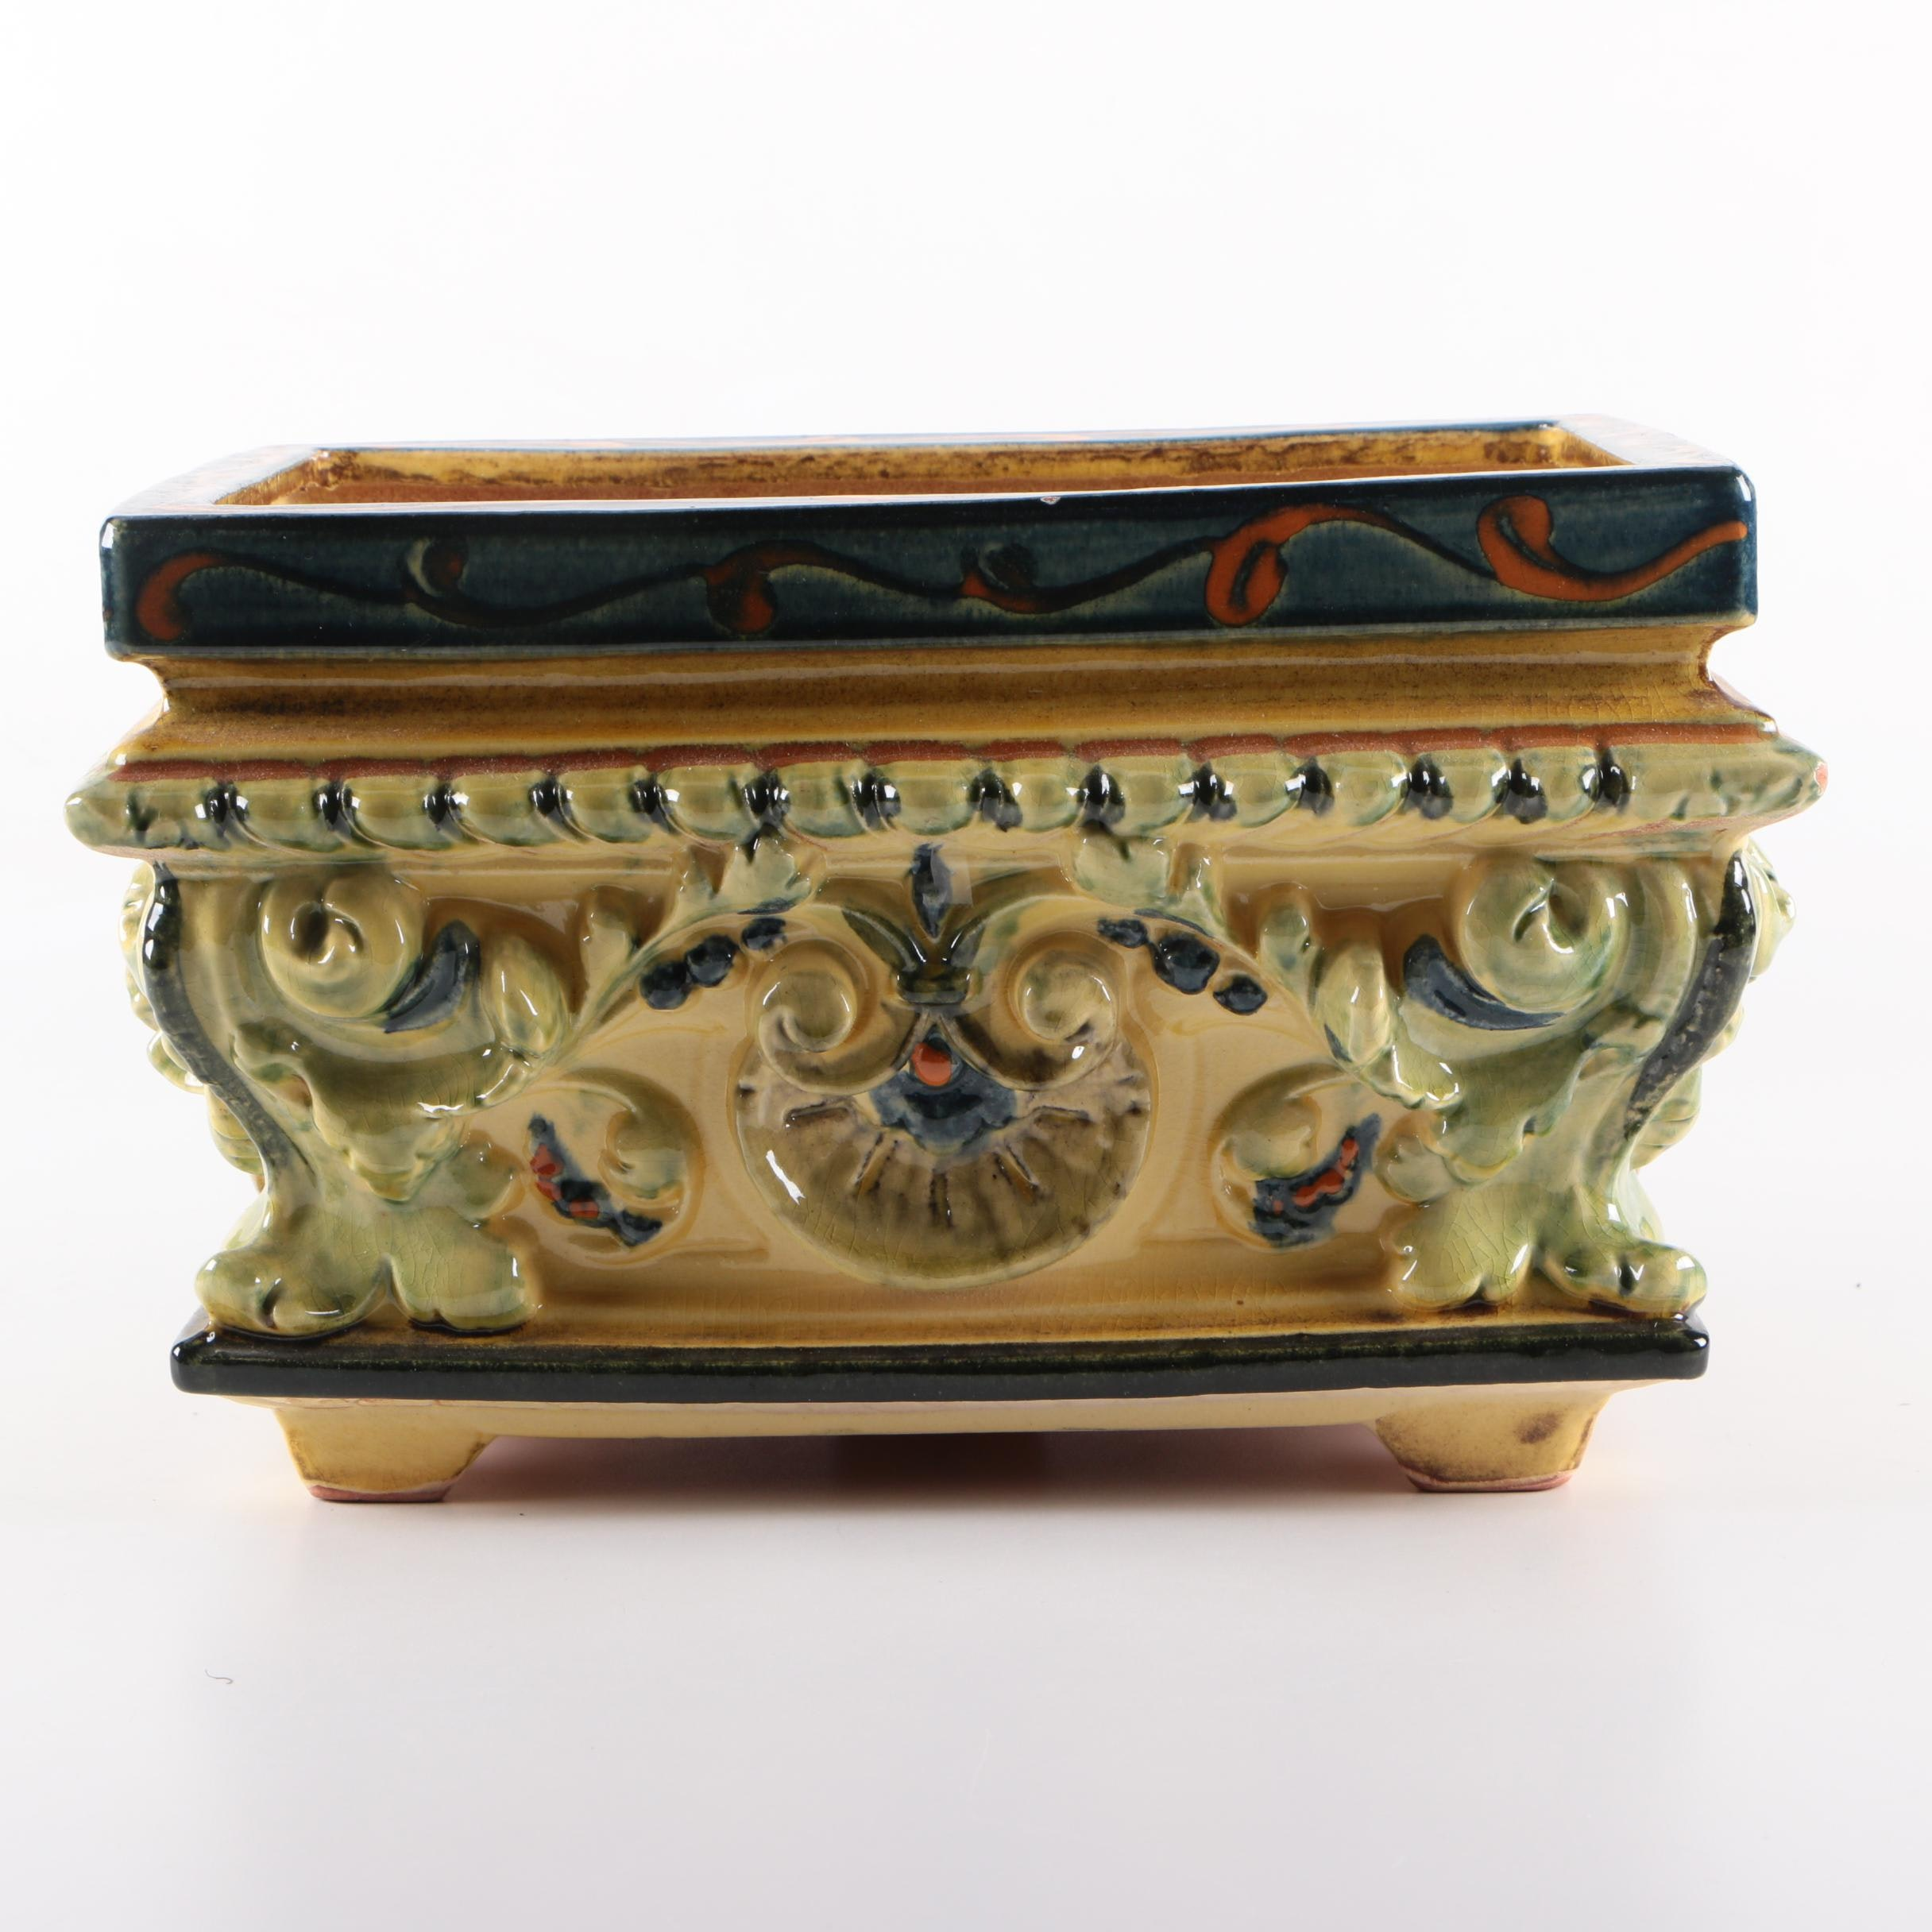 Decorative Ceramic Footed Box